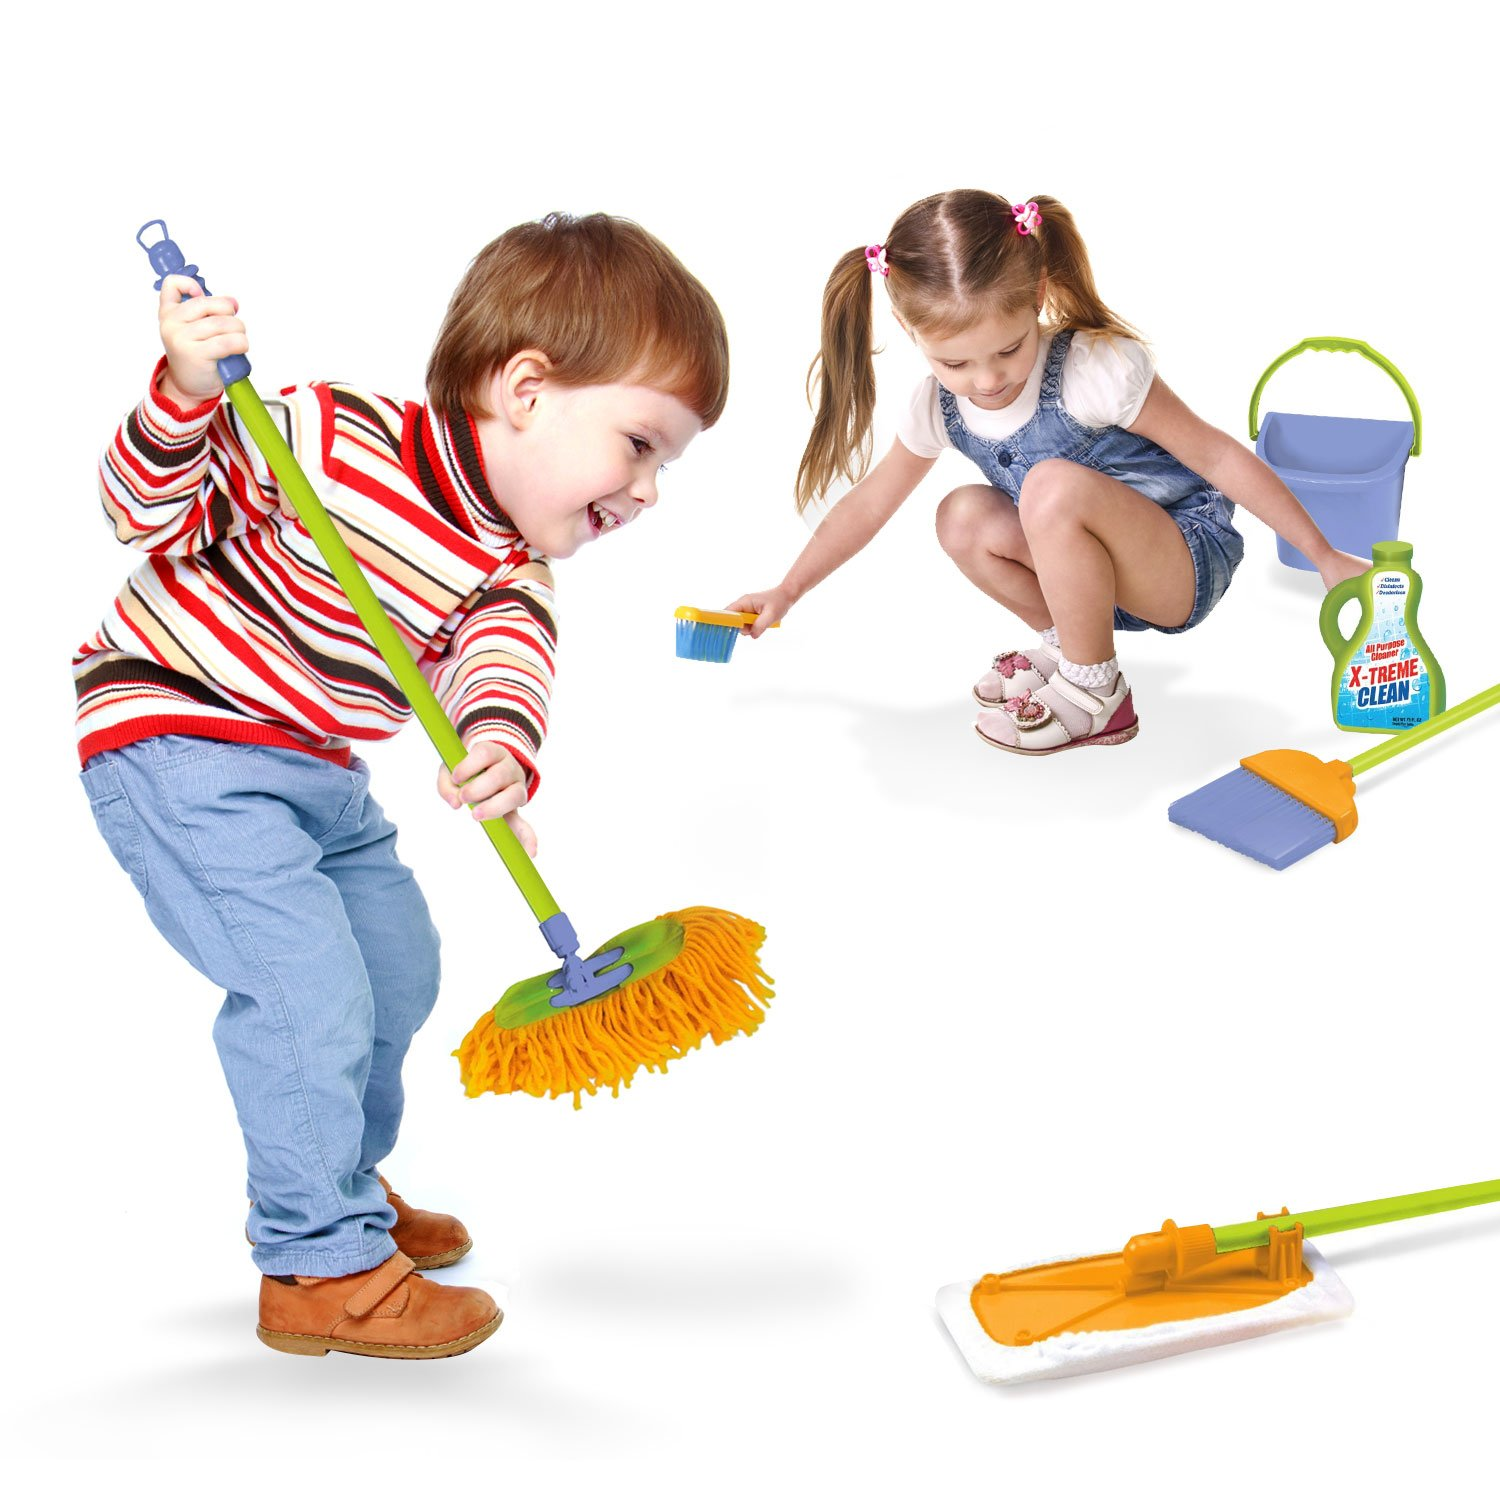 children cleaning - photo #4